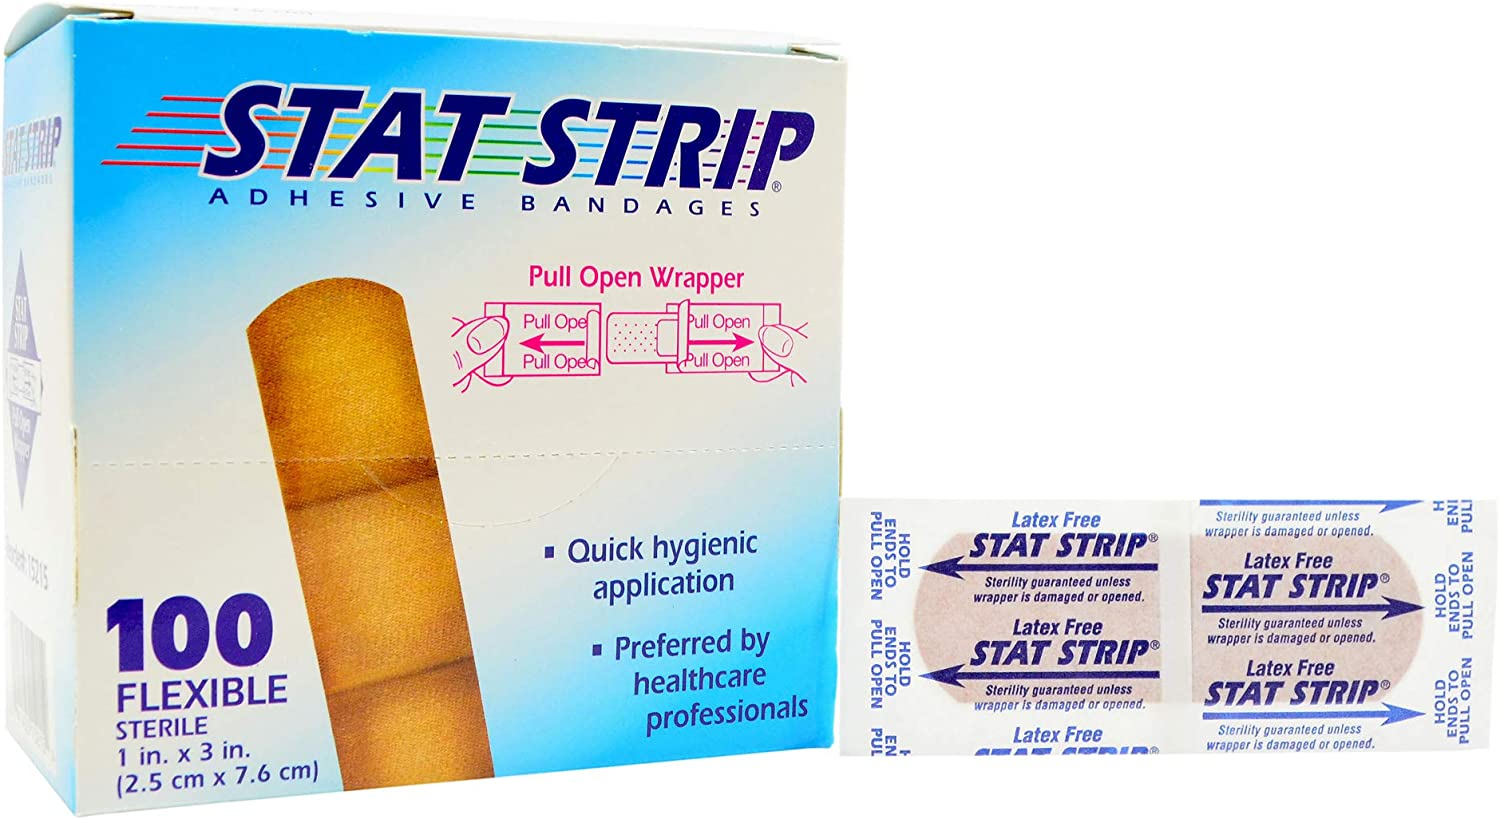 STAT Strip Adhesive Bandages 100 Flexible Latex Free 1x3 inch